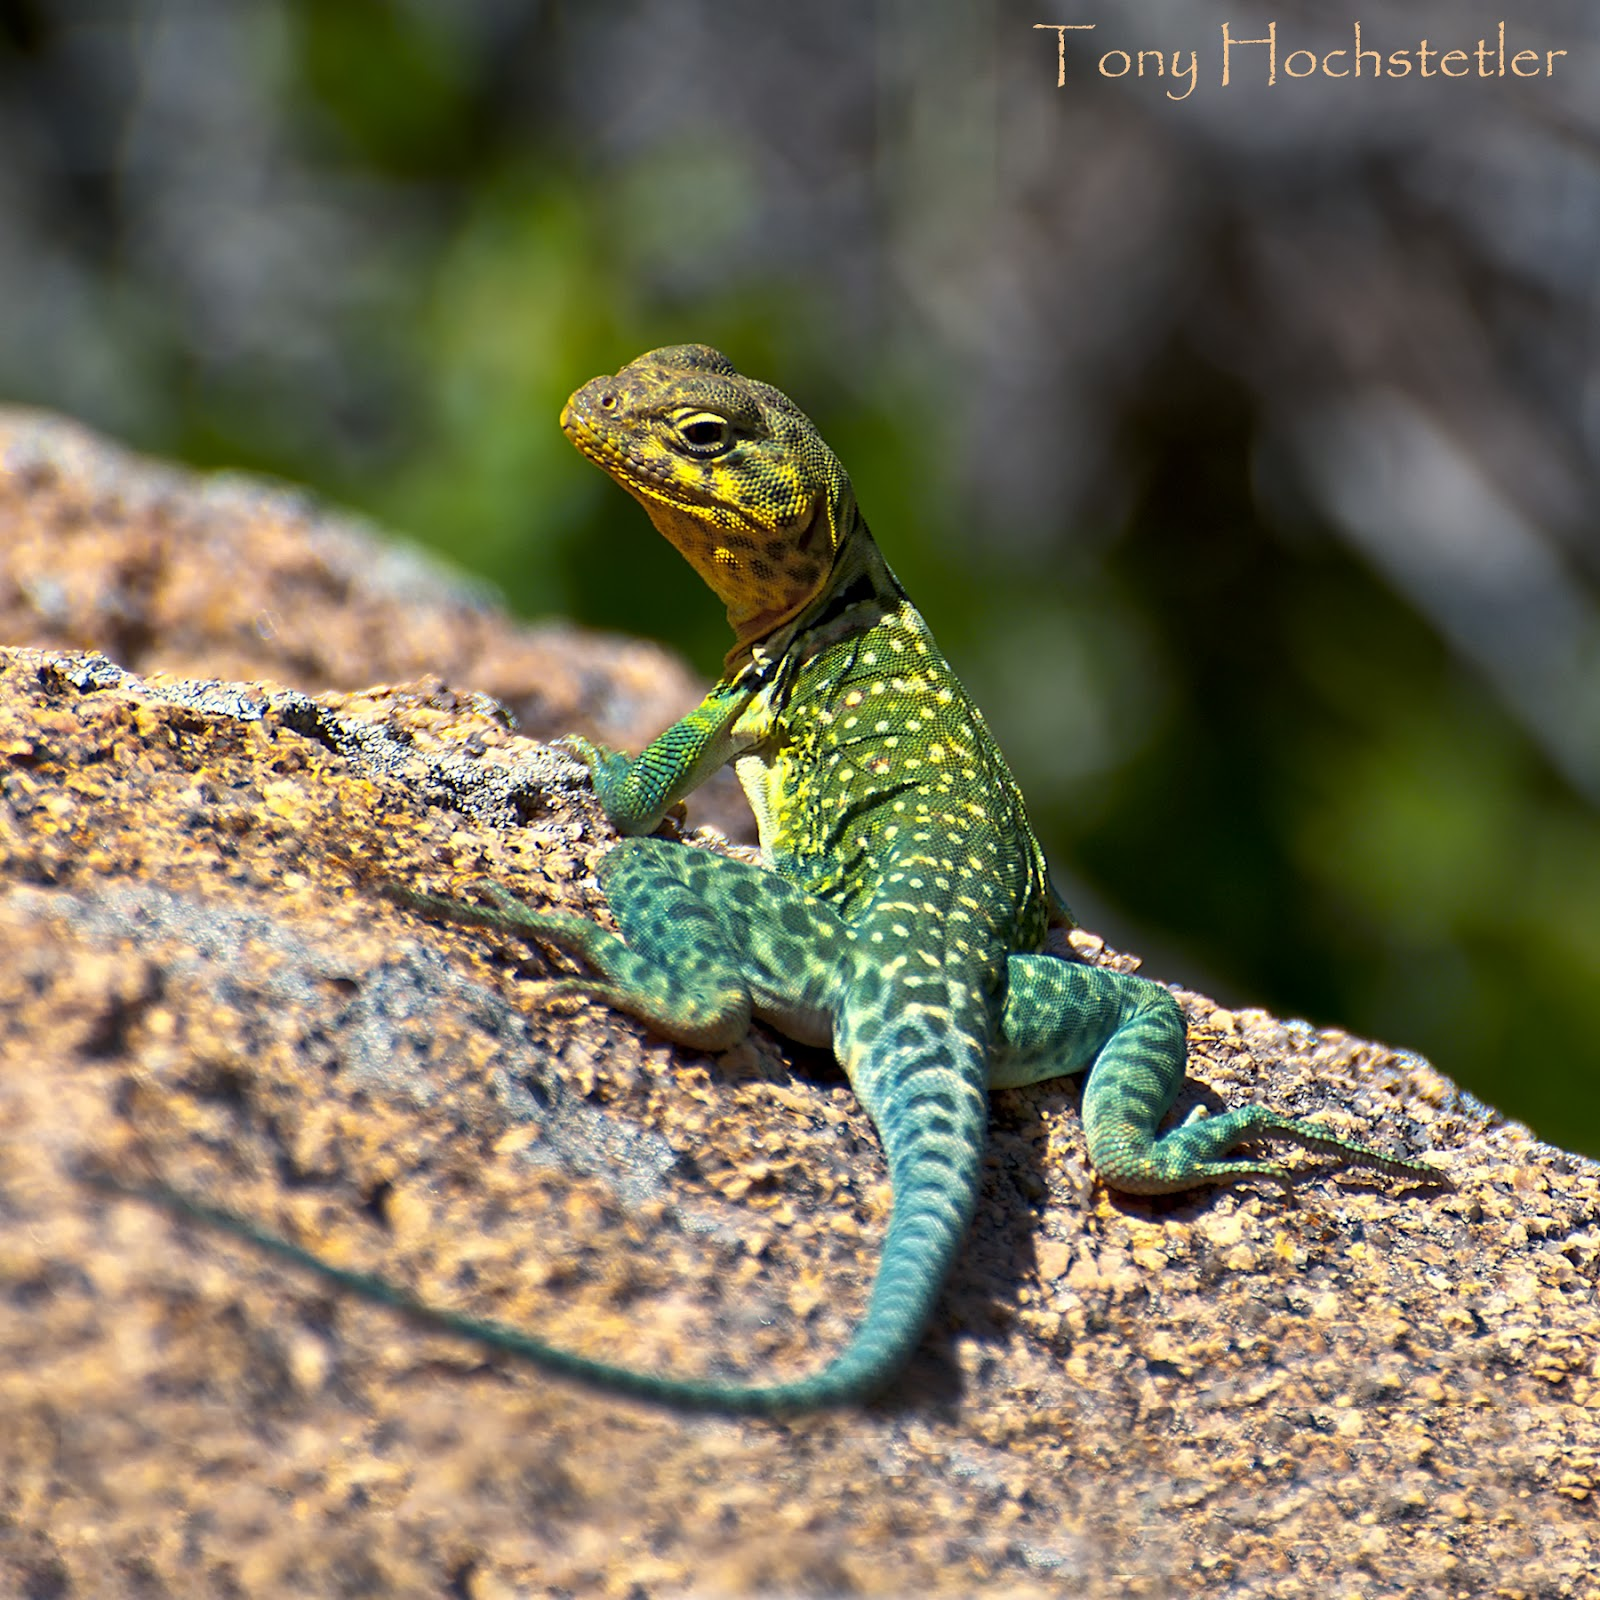 Oklahoma Lizards Pictures http://tonyhochstetler.blogspot.com/2012/04/collared-lizard.html